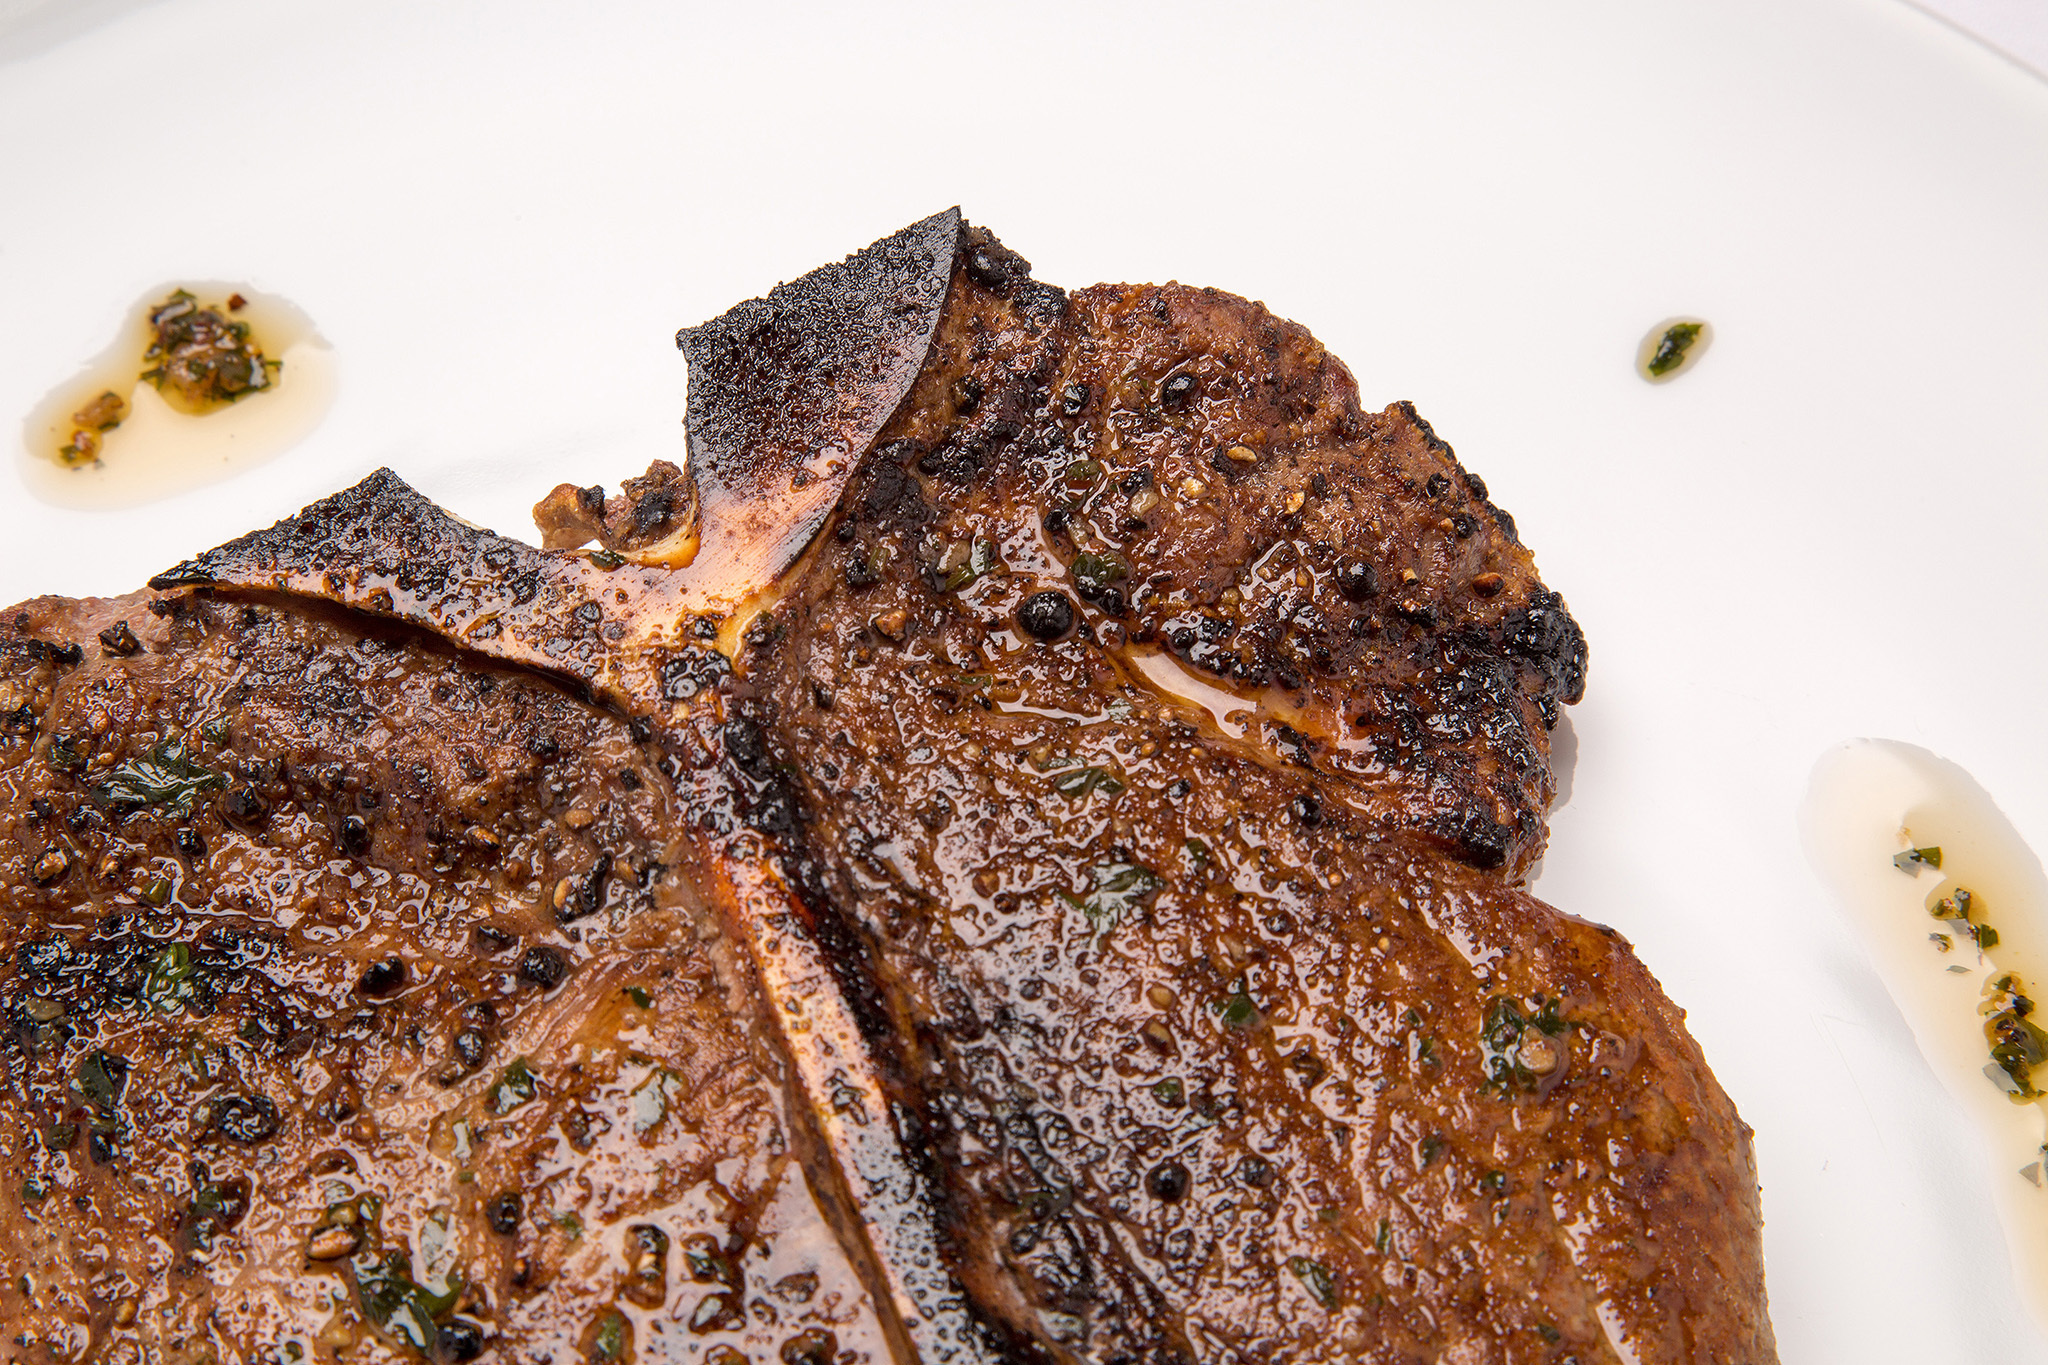 The 10 best steakhouses in Miami